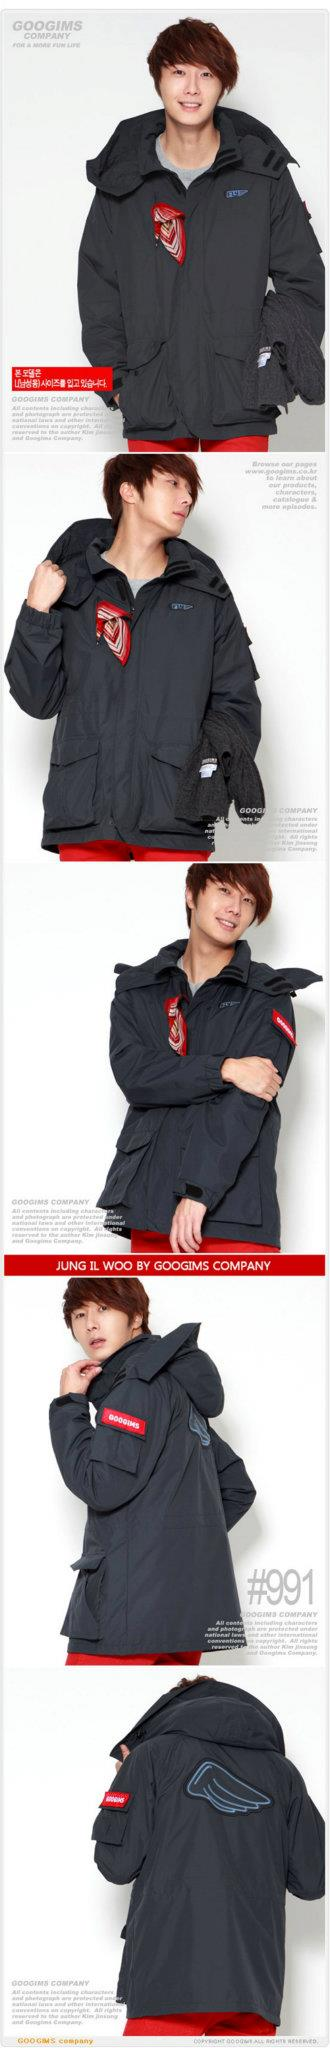 2011 10 Jung II-woo for Googims. Part 3 00008